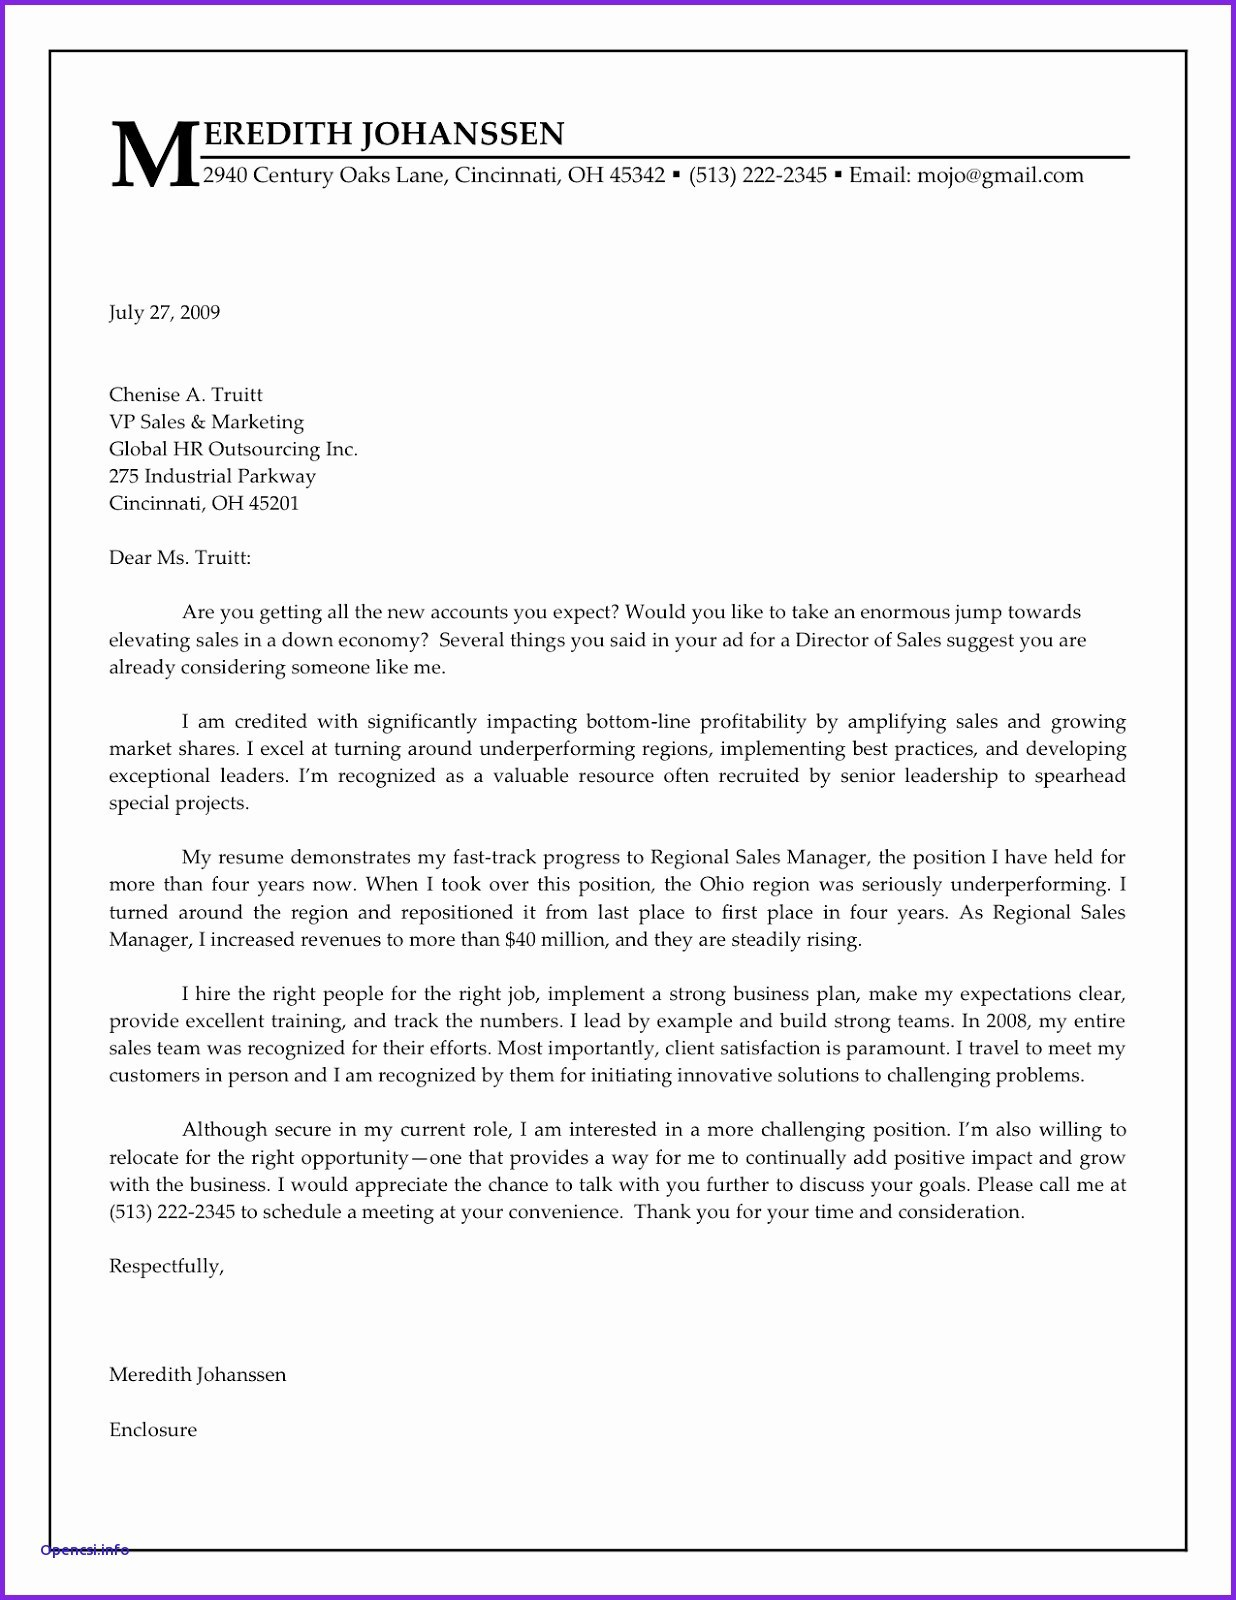 Google Letter Template - Lovely Google Docs Resume Template Free